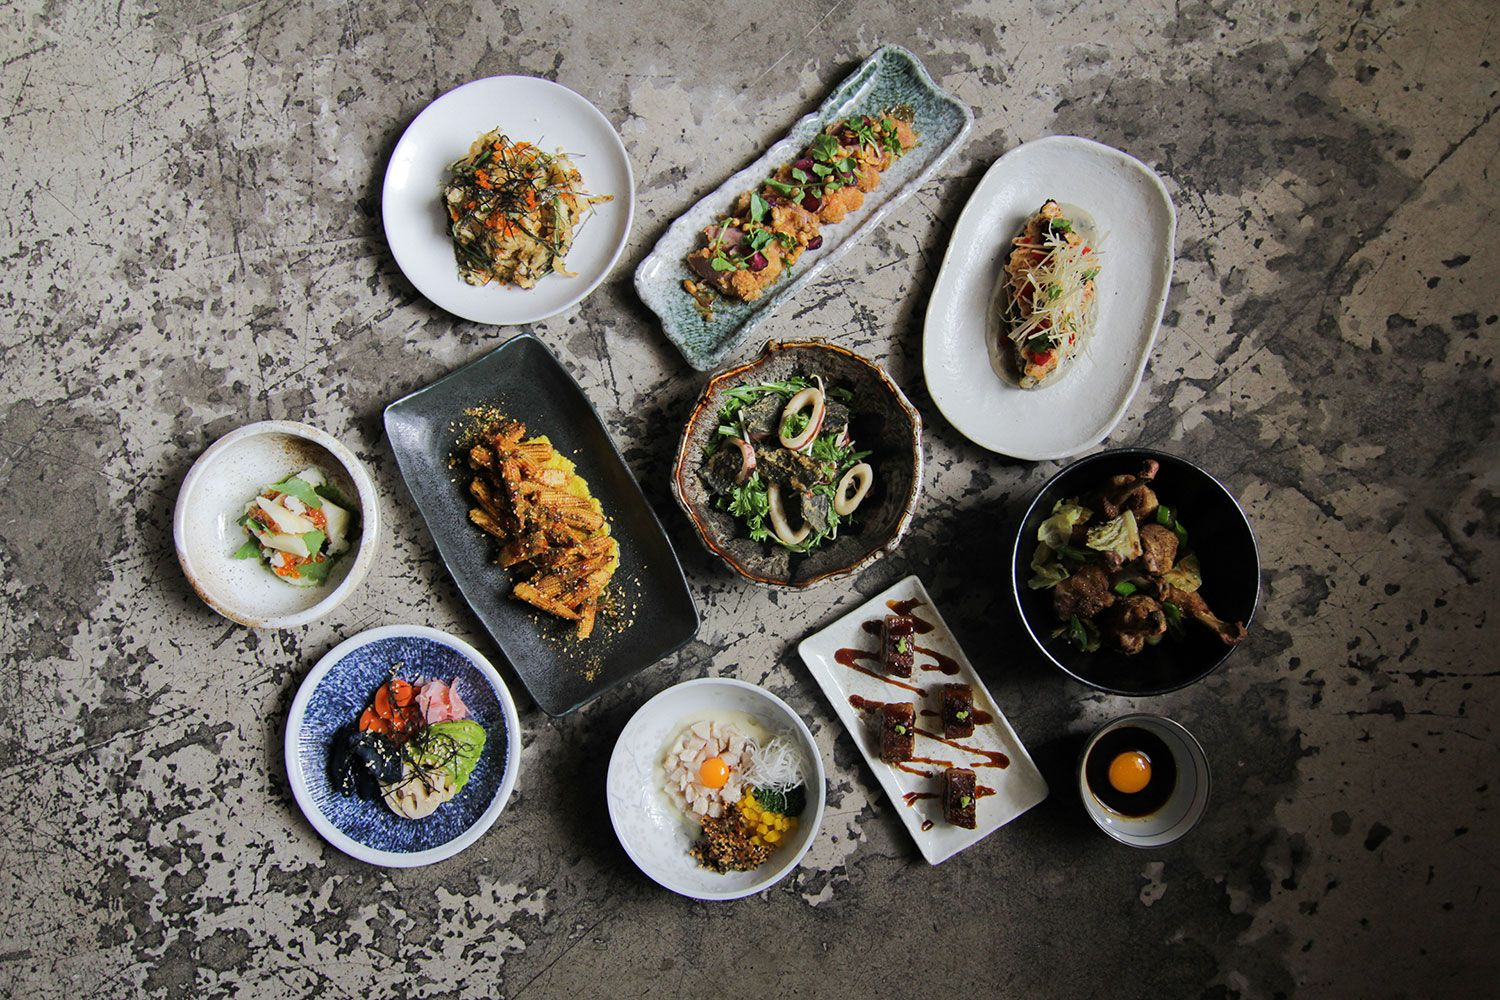 Where To Eat This Week: May 14-20